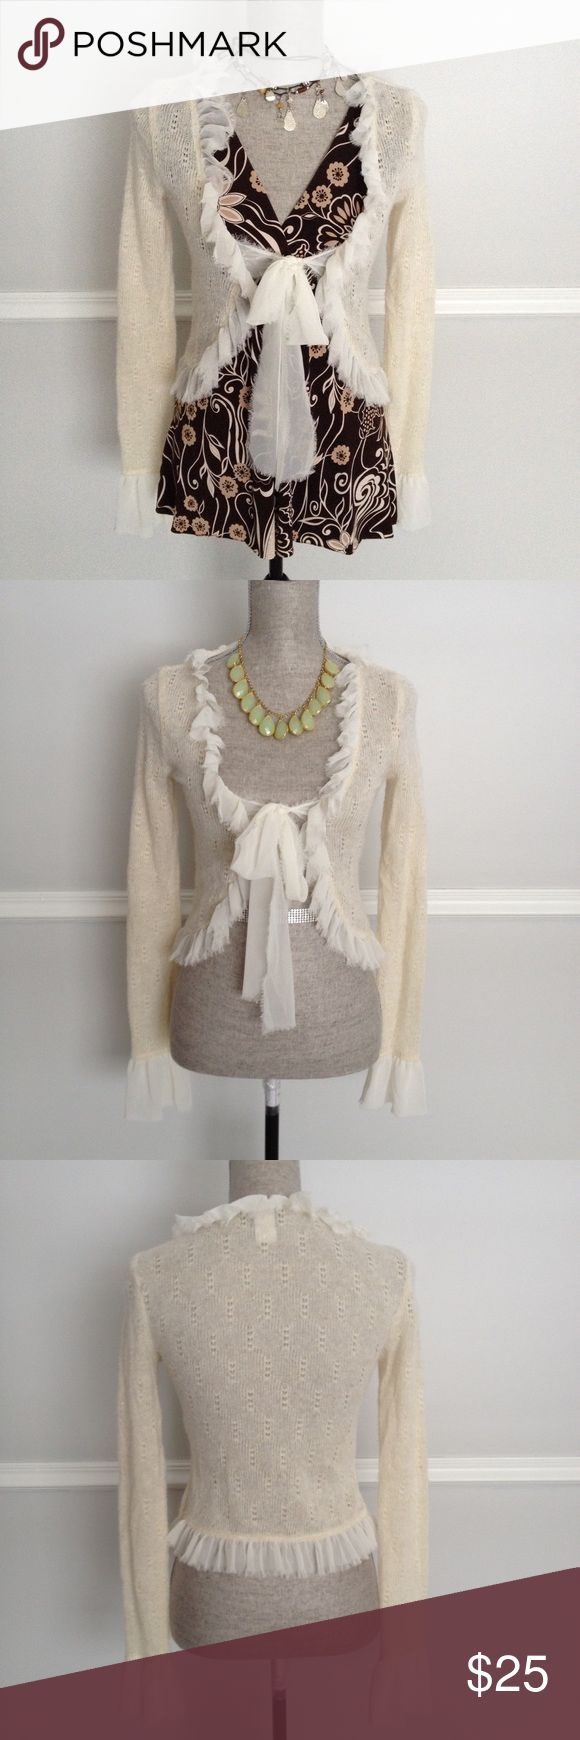 Exquisitely Chic Shrug This very subtle shimmery cardigan sweater/shrug has a lightweight & delicate feel with its loosely woven fibers of cream and a subtle strand of gold thread and adorned with creamy sheer, frayed-bottom ruffles.  Very versatile and would literally go with anything from casual to dressy.  It's a small but I would say it runs small, more like an extra small. (Machine washable) Daytrip Sweaters Cardigans